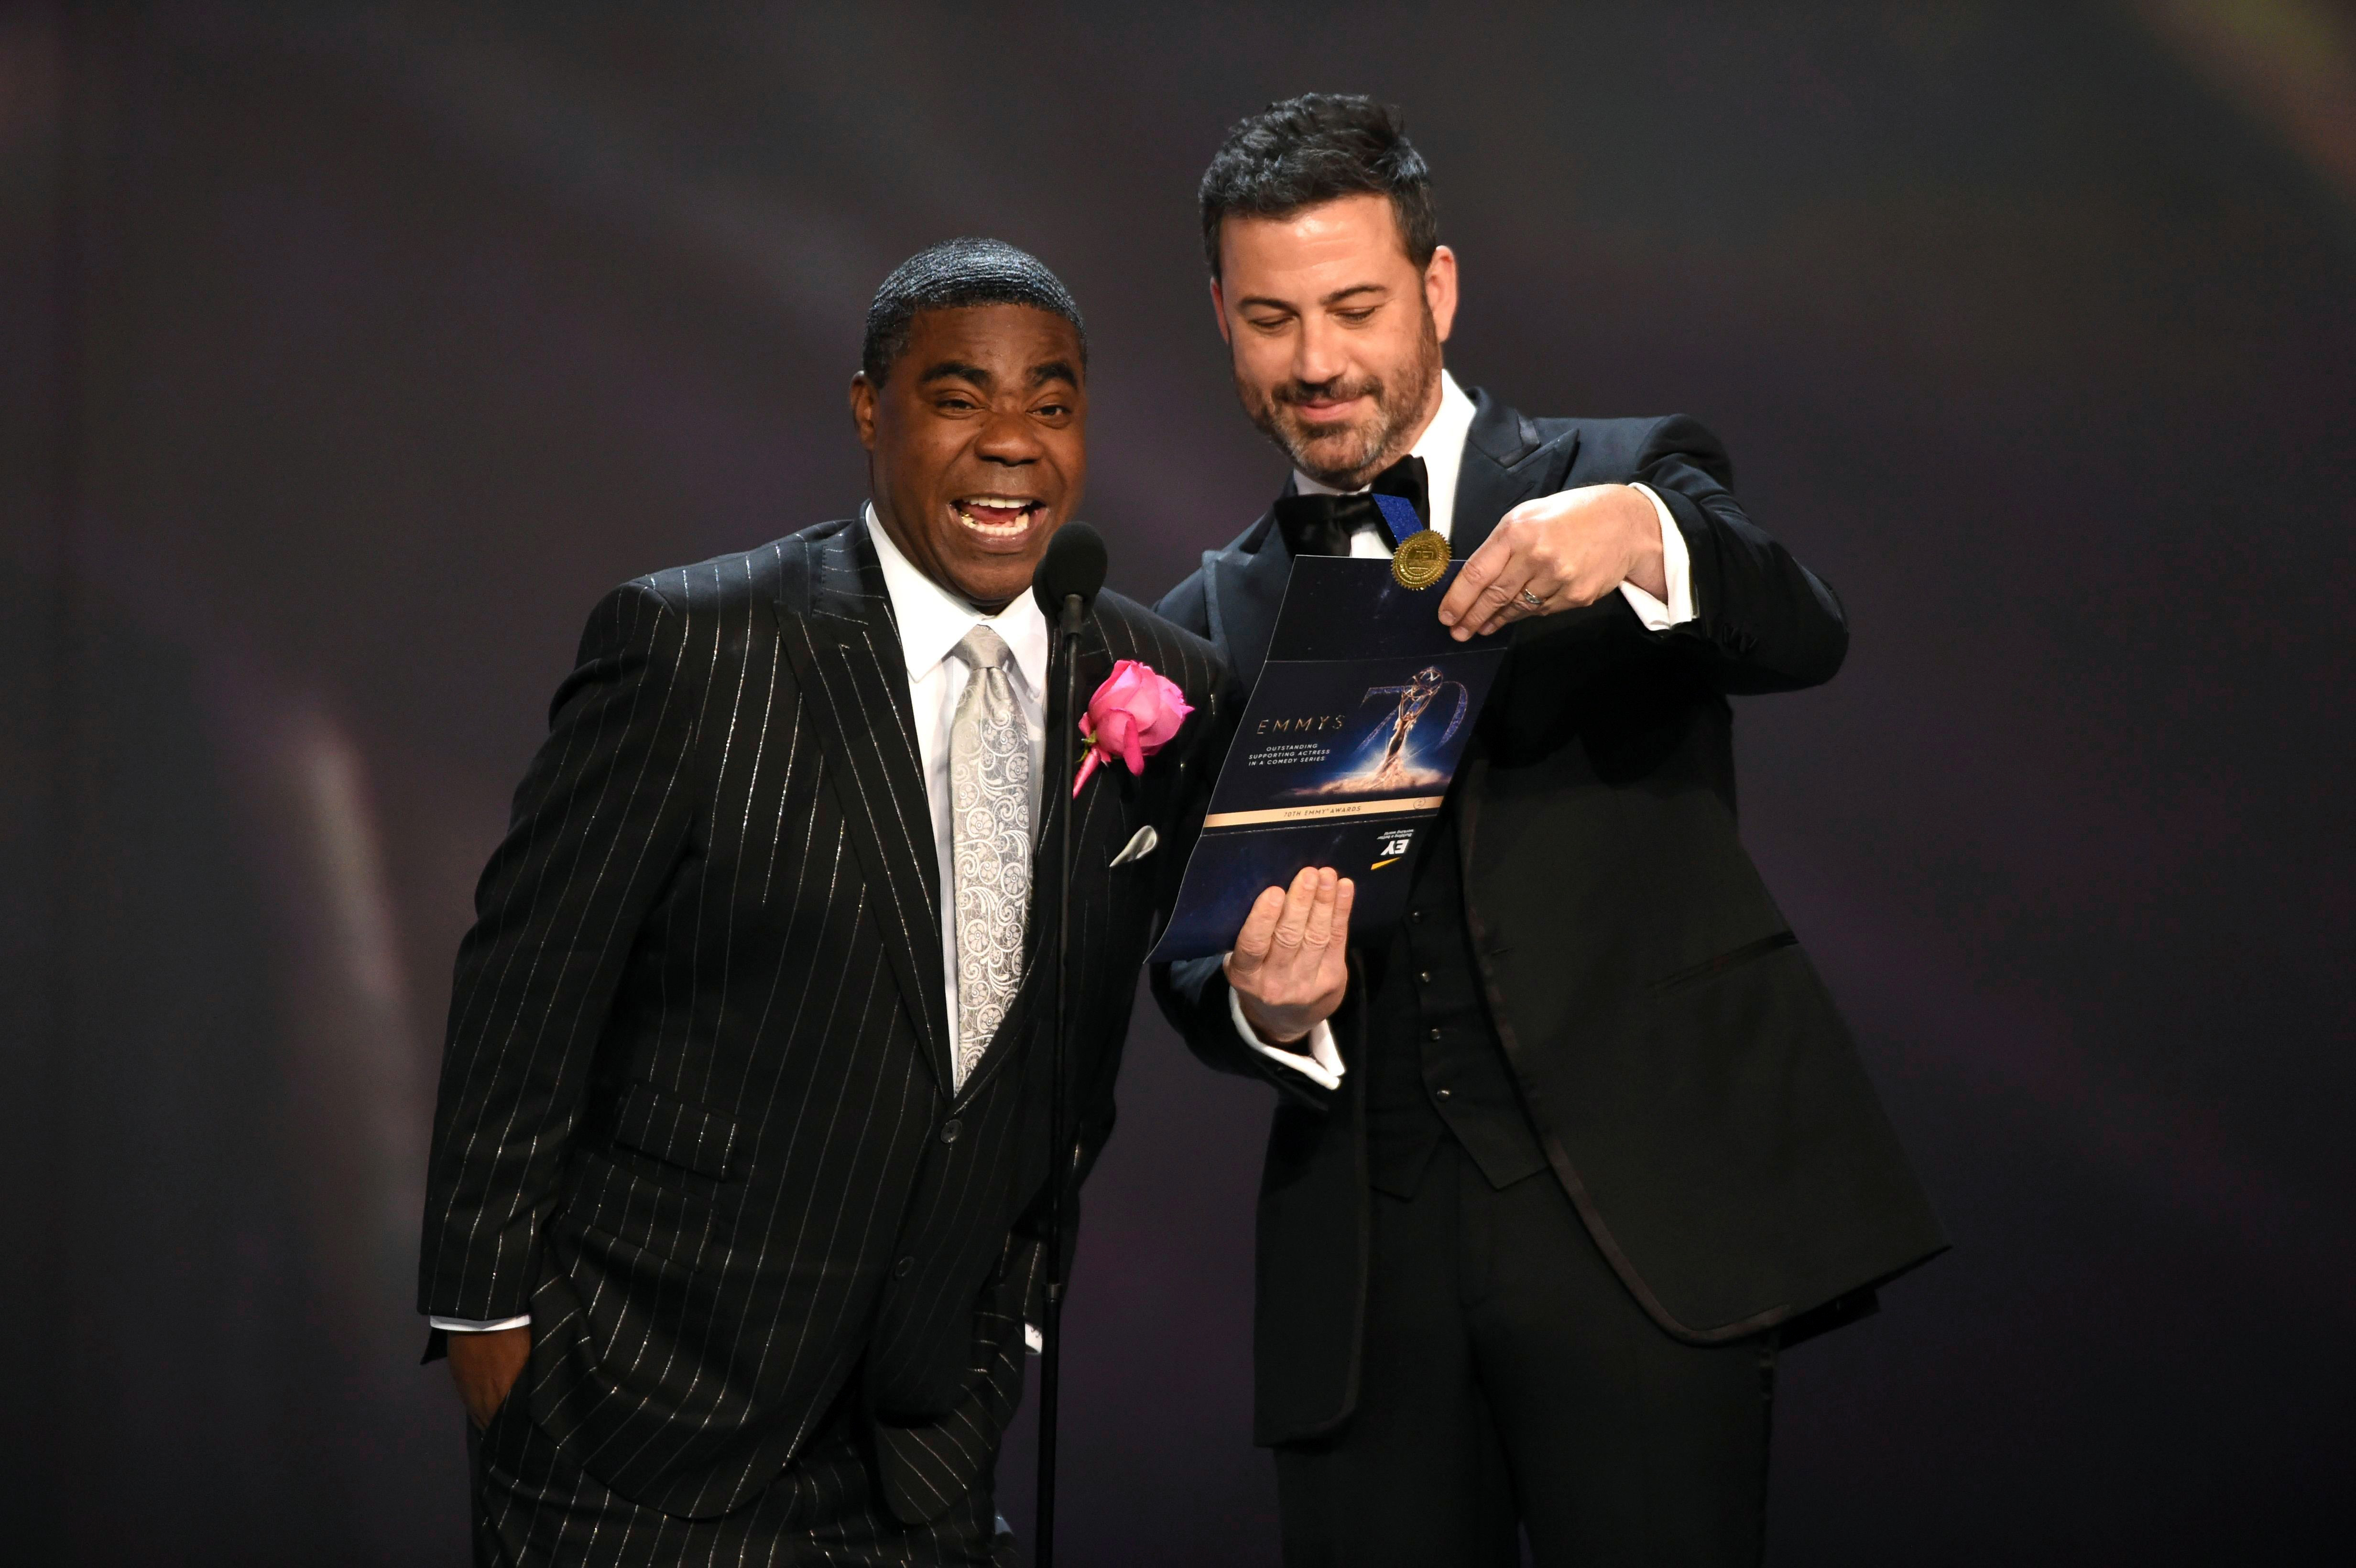 Tracy Morgan, Jimmy Kimmel. Tracy Morgan, left, and Jimmy Kimmel present the award for outstanding supporting actress in a comedy series at the 70th Primetime Emmy Awards, at the Microsoft Theater in Los Angeles70th Primetime Emmy Awards - Show, Los Angeles, USA - 17 Sep 2018